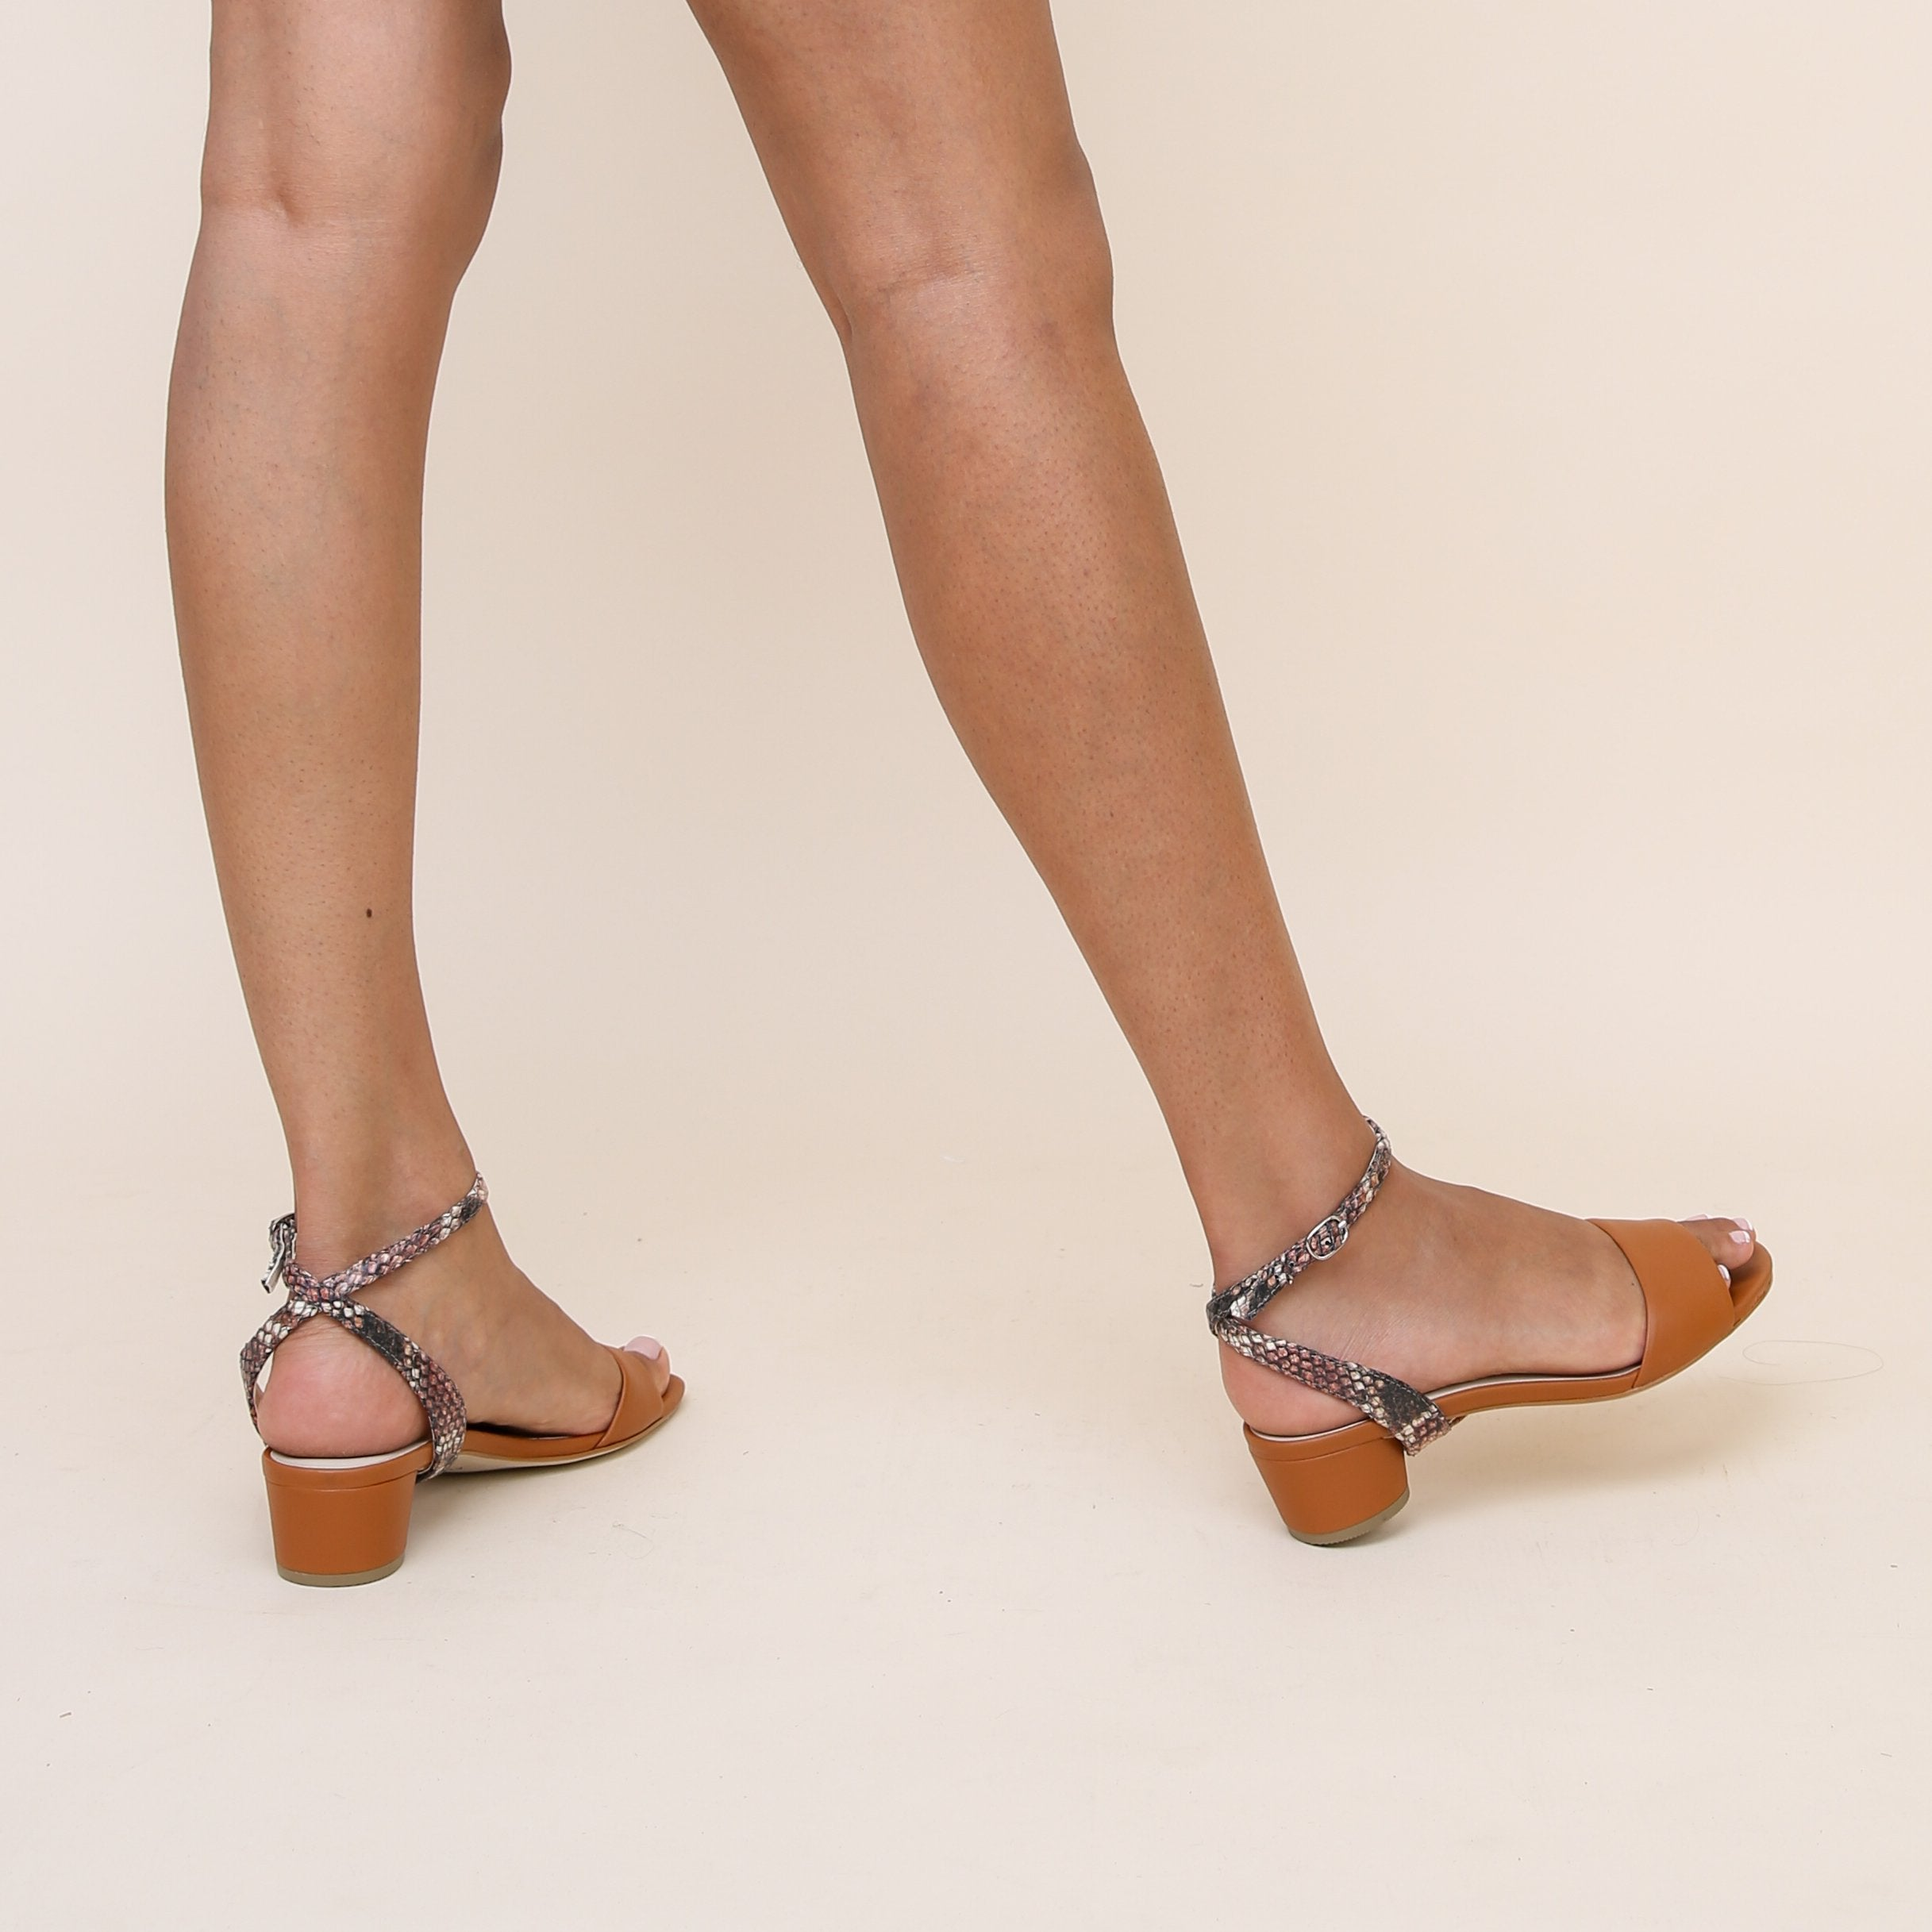 Marilyn in Rosy Boa Custom Shoe Straps | Alterre Make A Shoe - Sustainable Shoes & Ethical Footwear